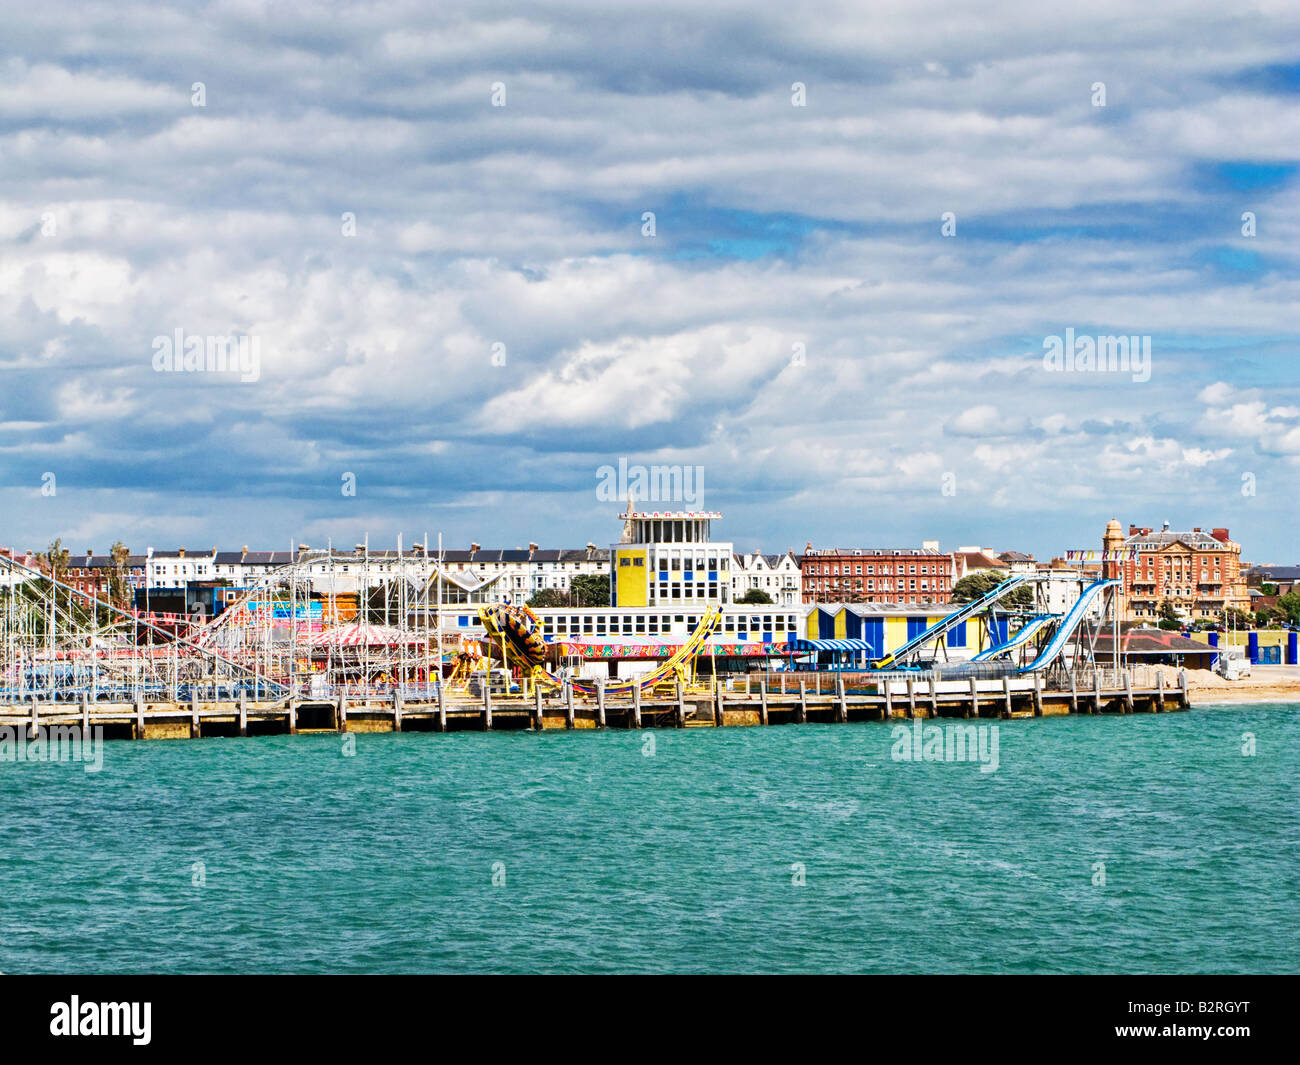 Clarence Pier Amusement Park at Southsea Portsmouth Hampshire England UK Stock Photo